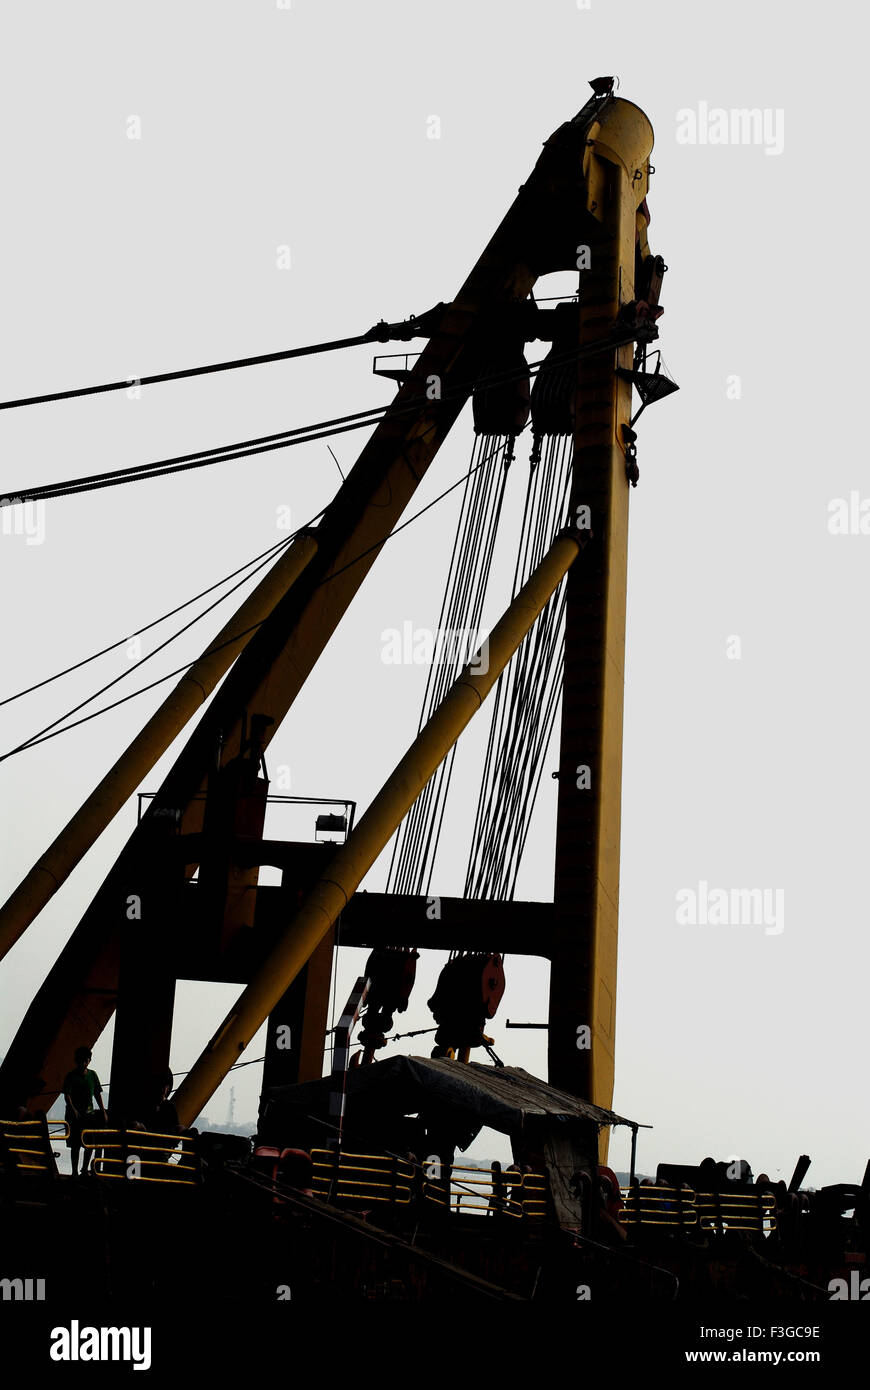 Asian Hercules floating crane having capacity 1600 metric tones erecting Bandra Worli sea ; Bombay Mumbai - Stock Image